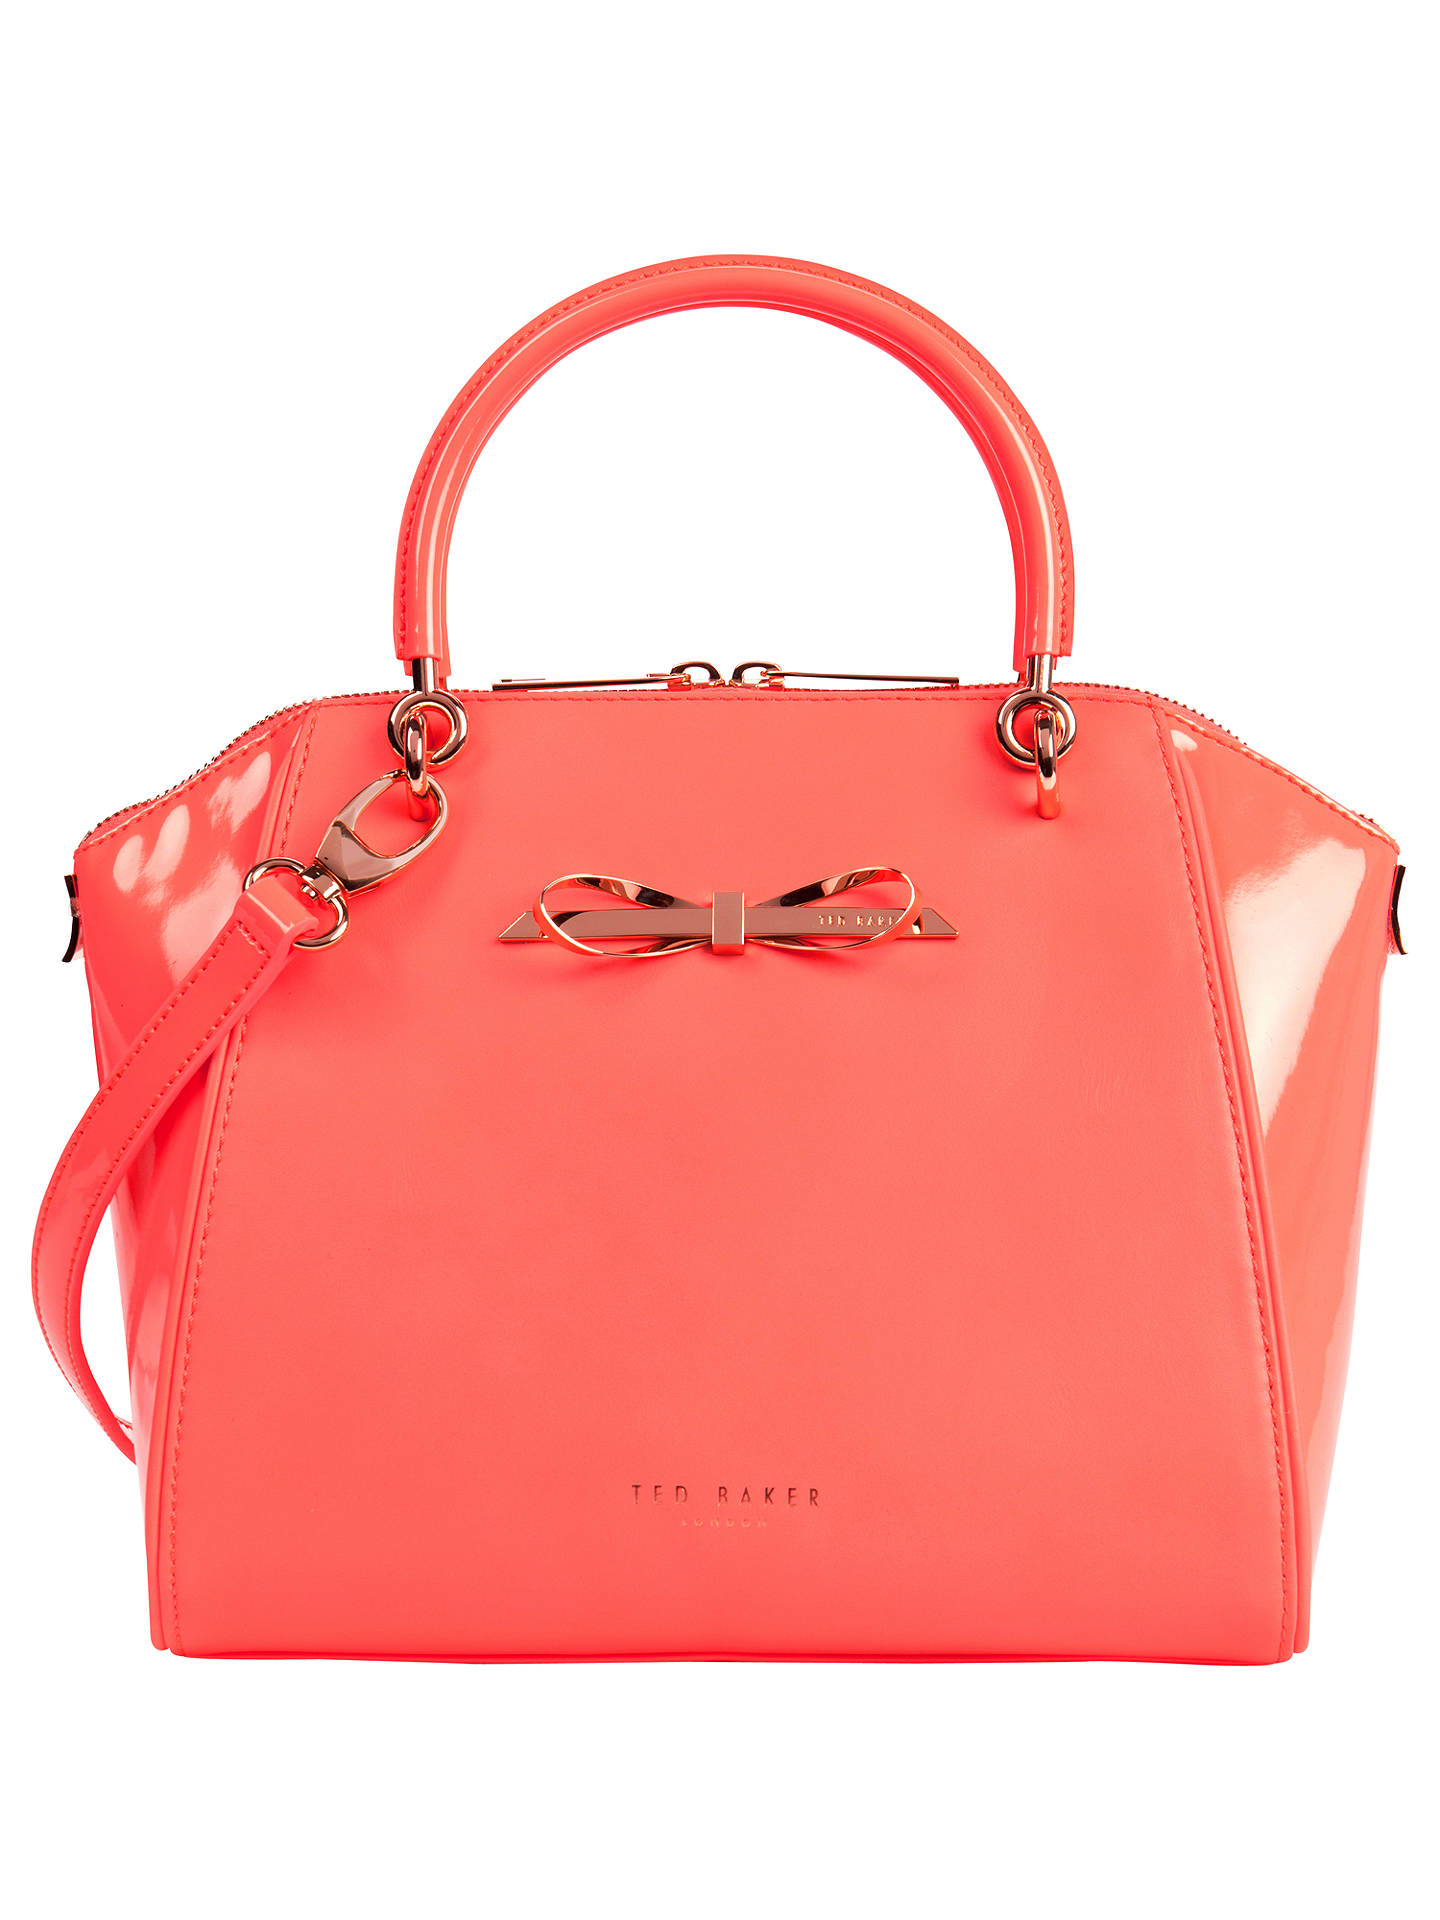 Ted Baker Leather Pailey Bow Tote Bag At John Lewis Amp Partners